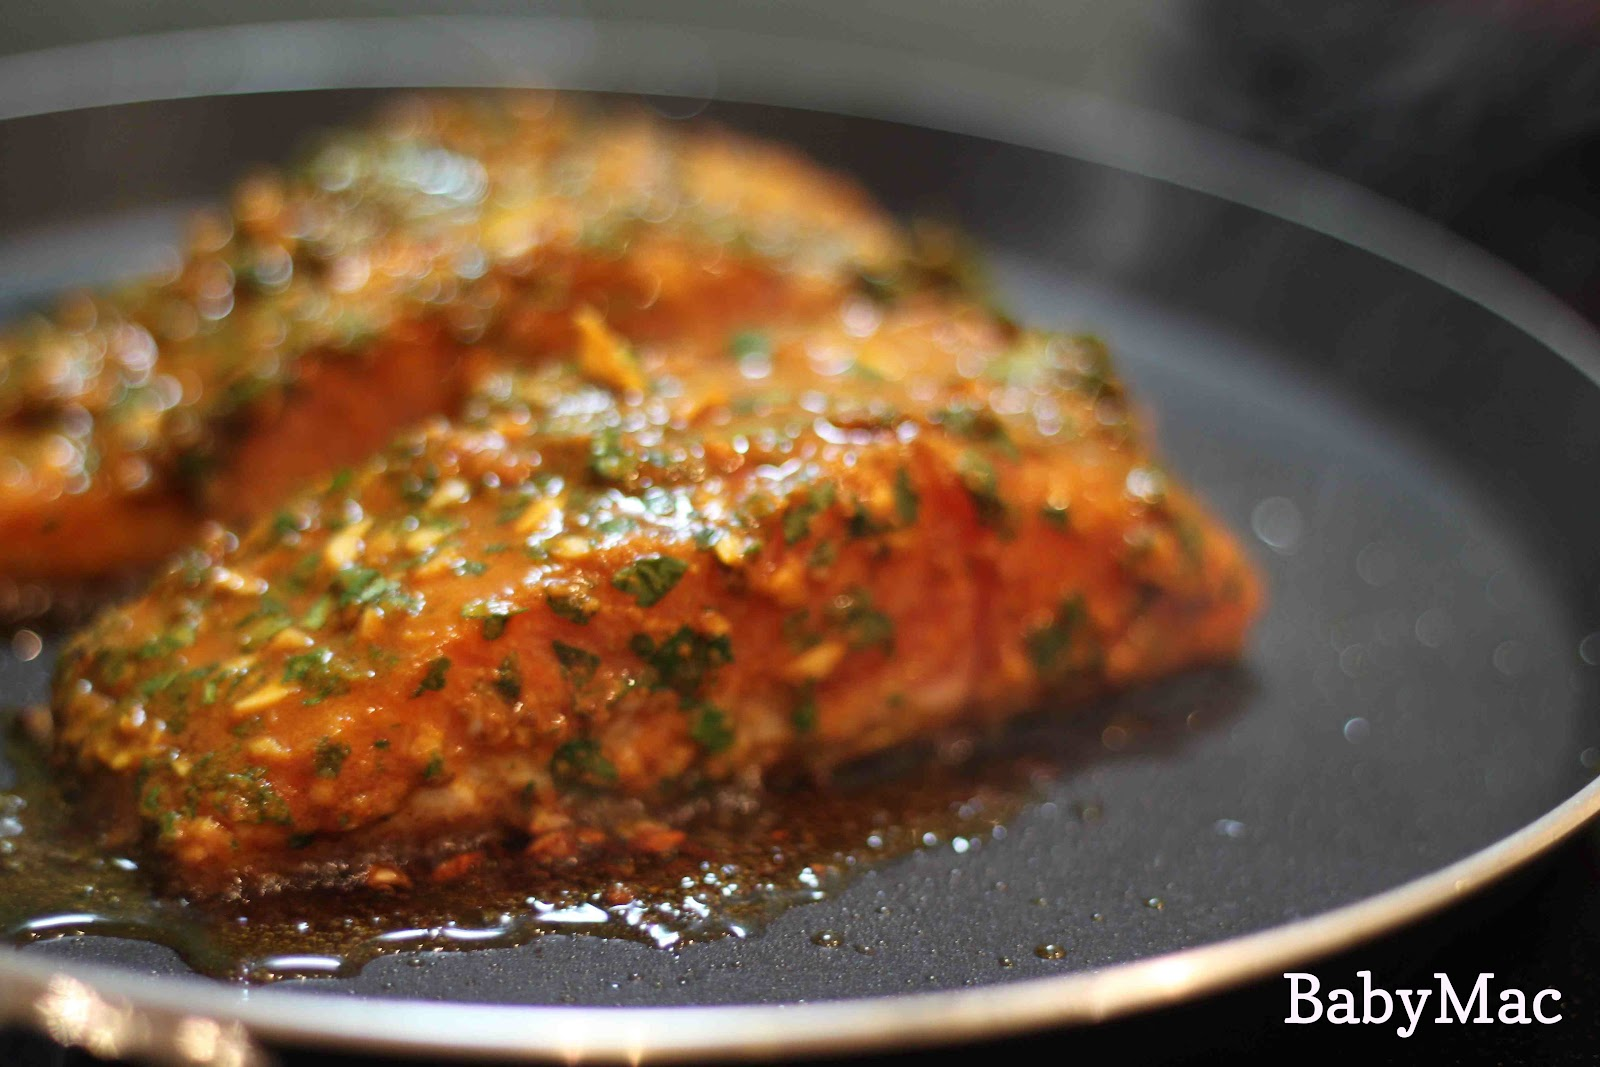 Just call me Bev: Moroccan spiced salmon - BabyMac